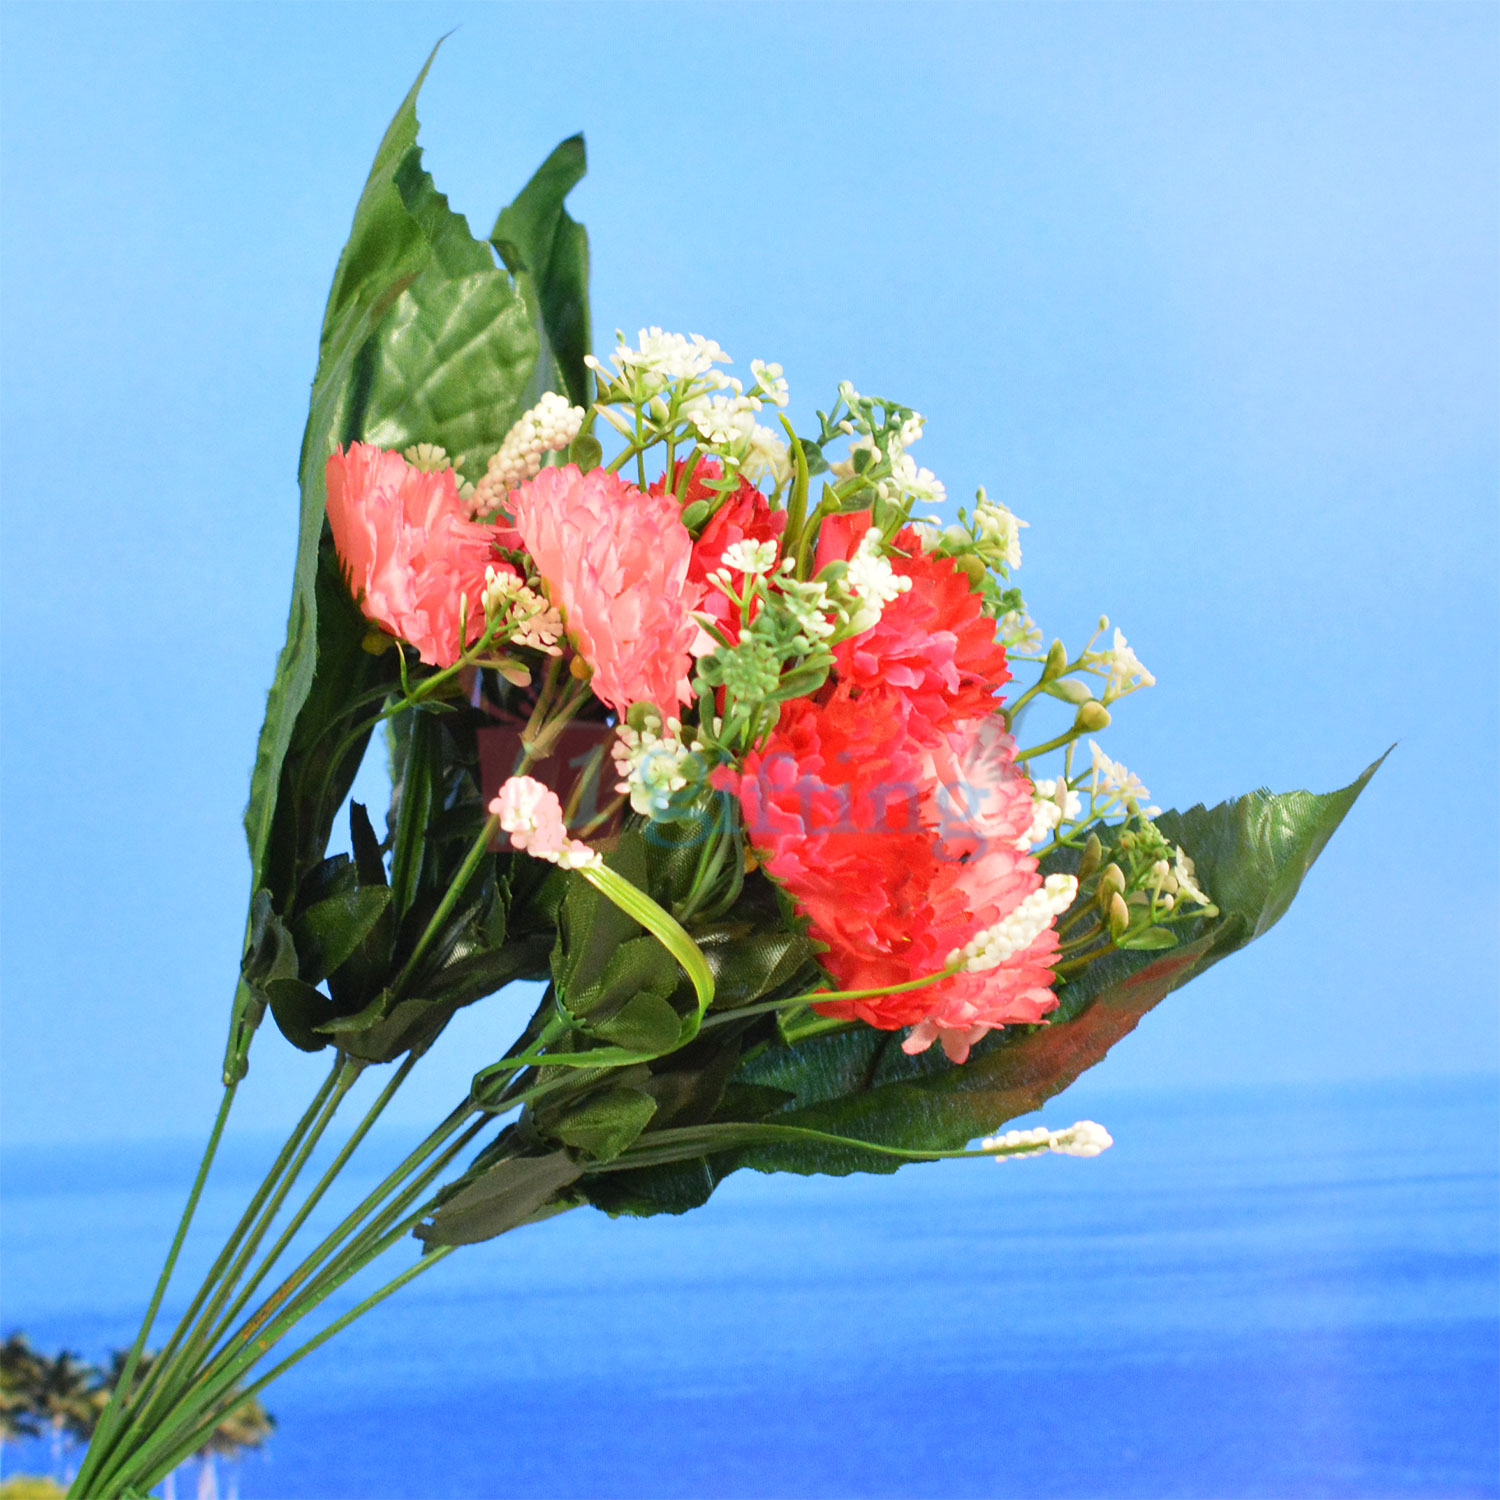 Decorative Red Flower and White Bud Artificial Plant